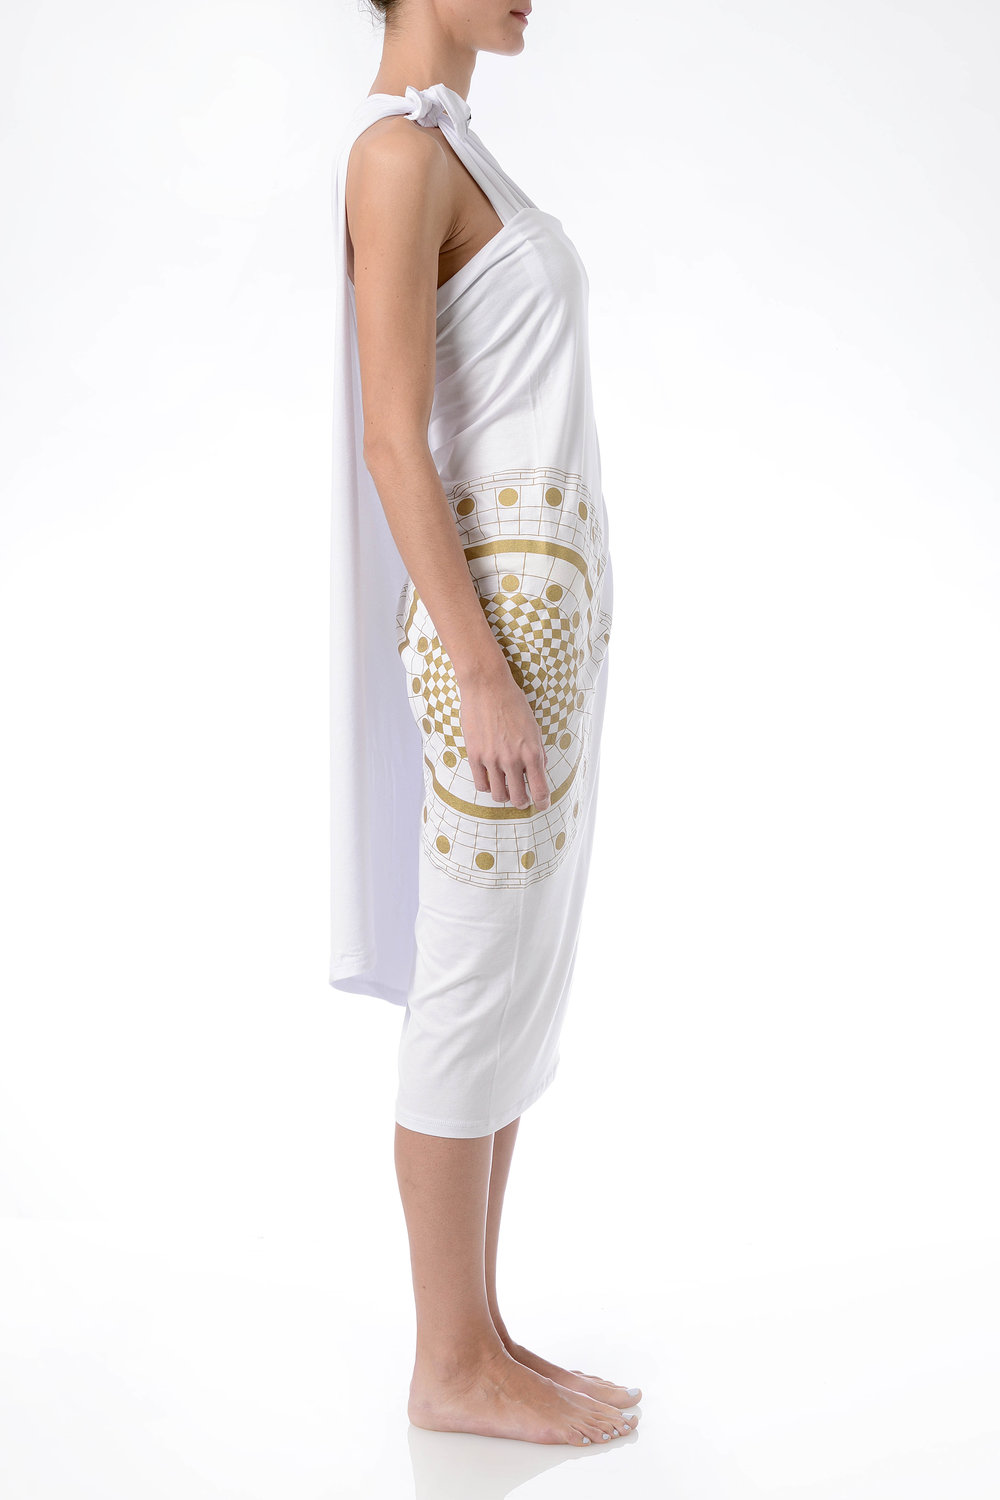 asclepius-oneshoulder-white-dress-goldenprint-beachwear1.jpg